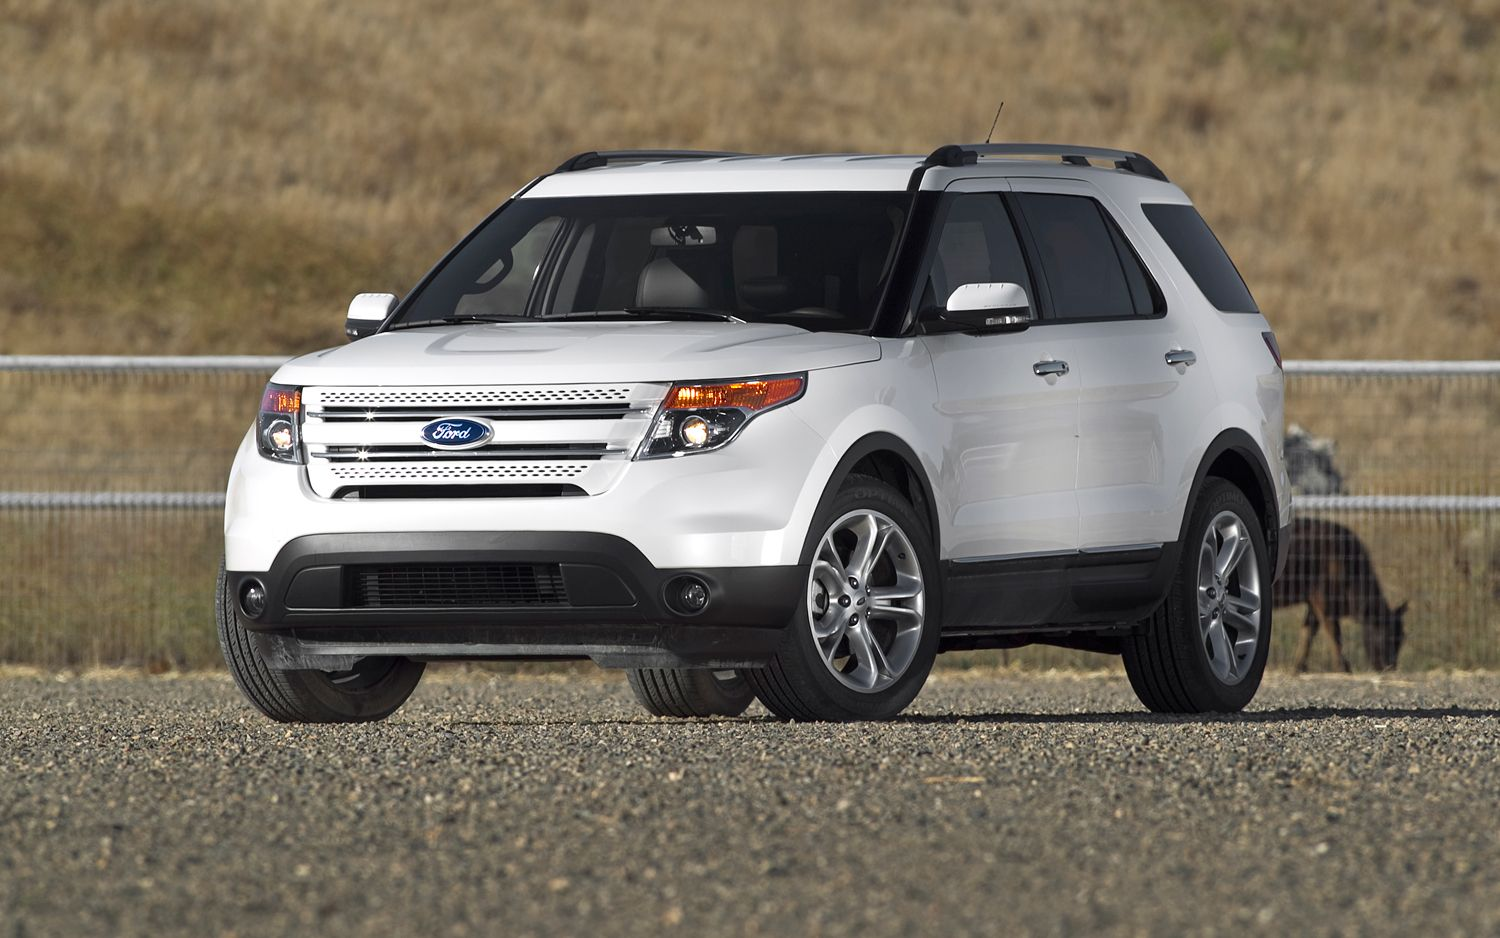 Ford XLT 2012 photo - 6